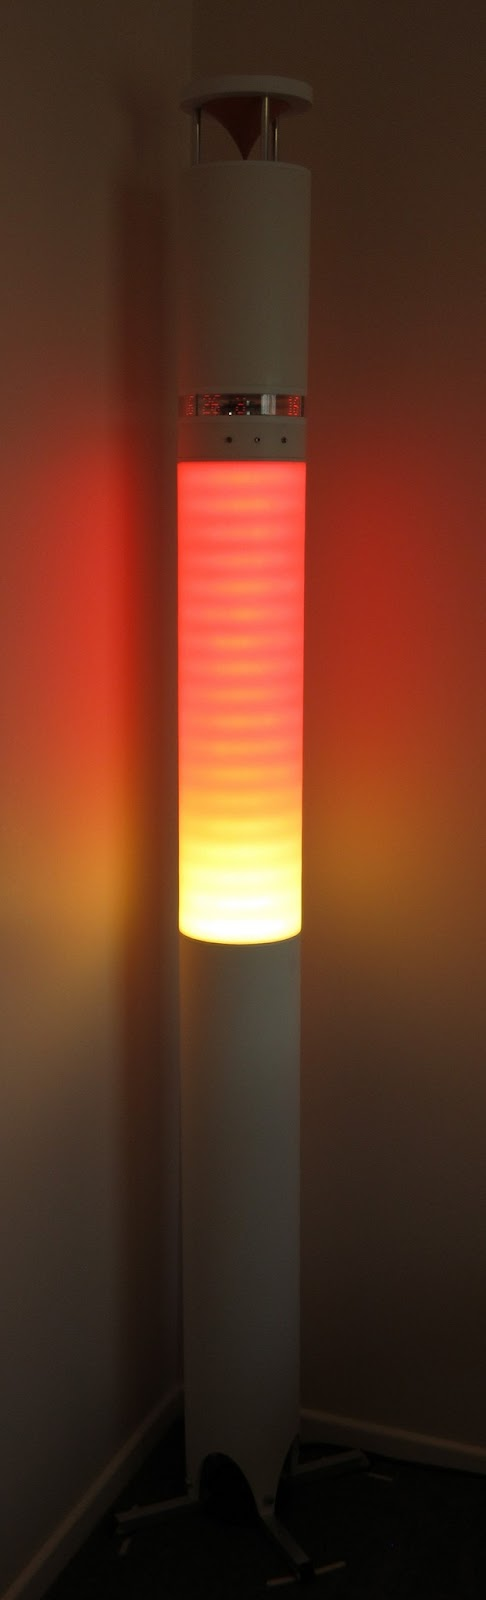 Circadia   Sunrise Lamp